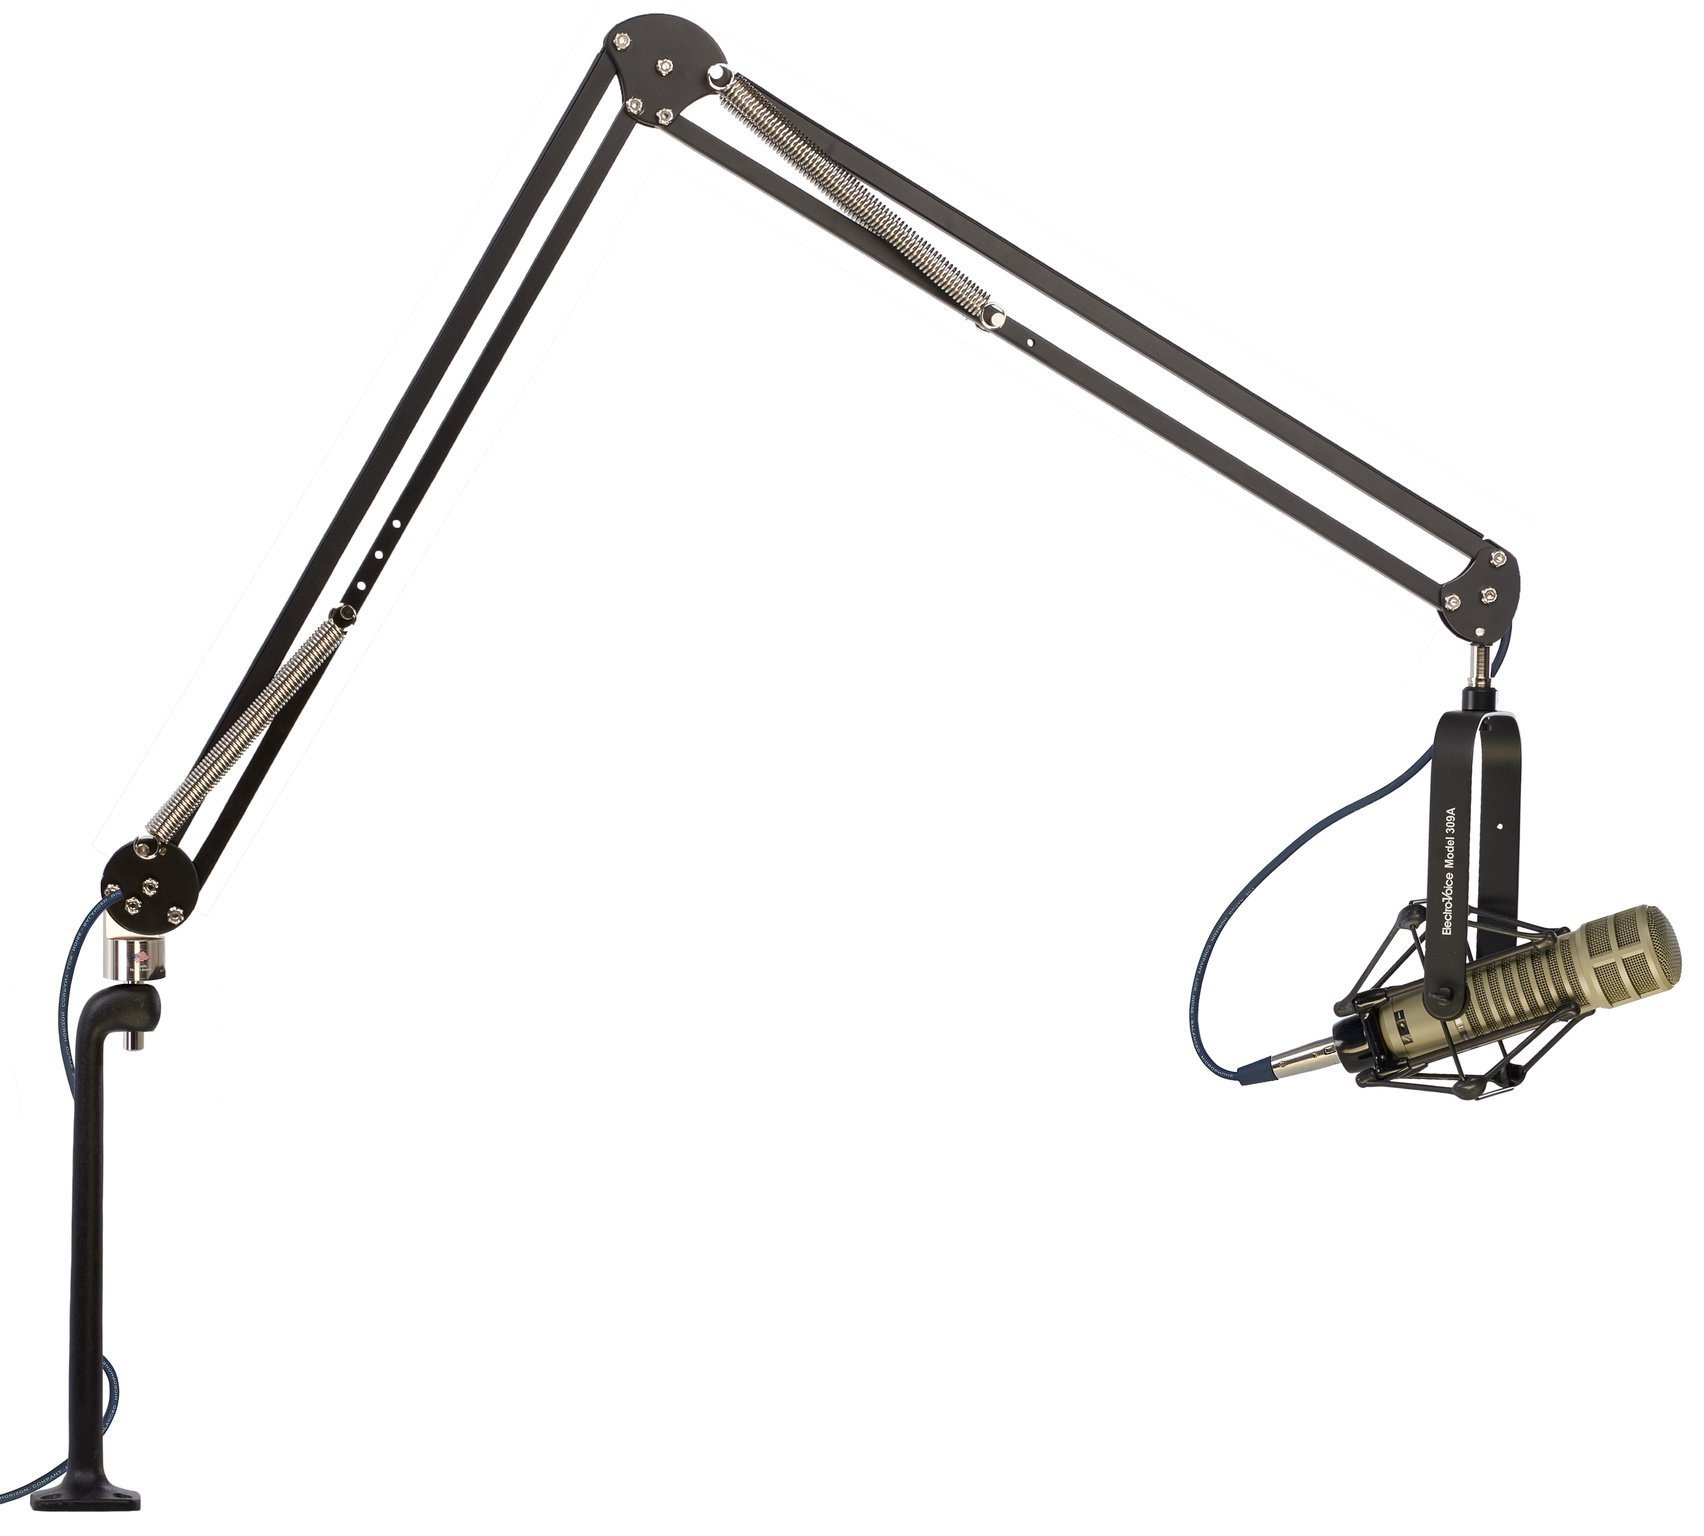 Elite Two Section Mic Arm with 12'' Cast Aluminum Riser, 45'' (114.3 cm) Reach, Holds Up to 2.5 lbs., Black/Chrome